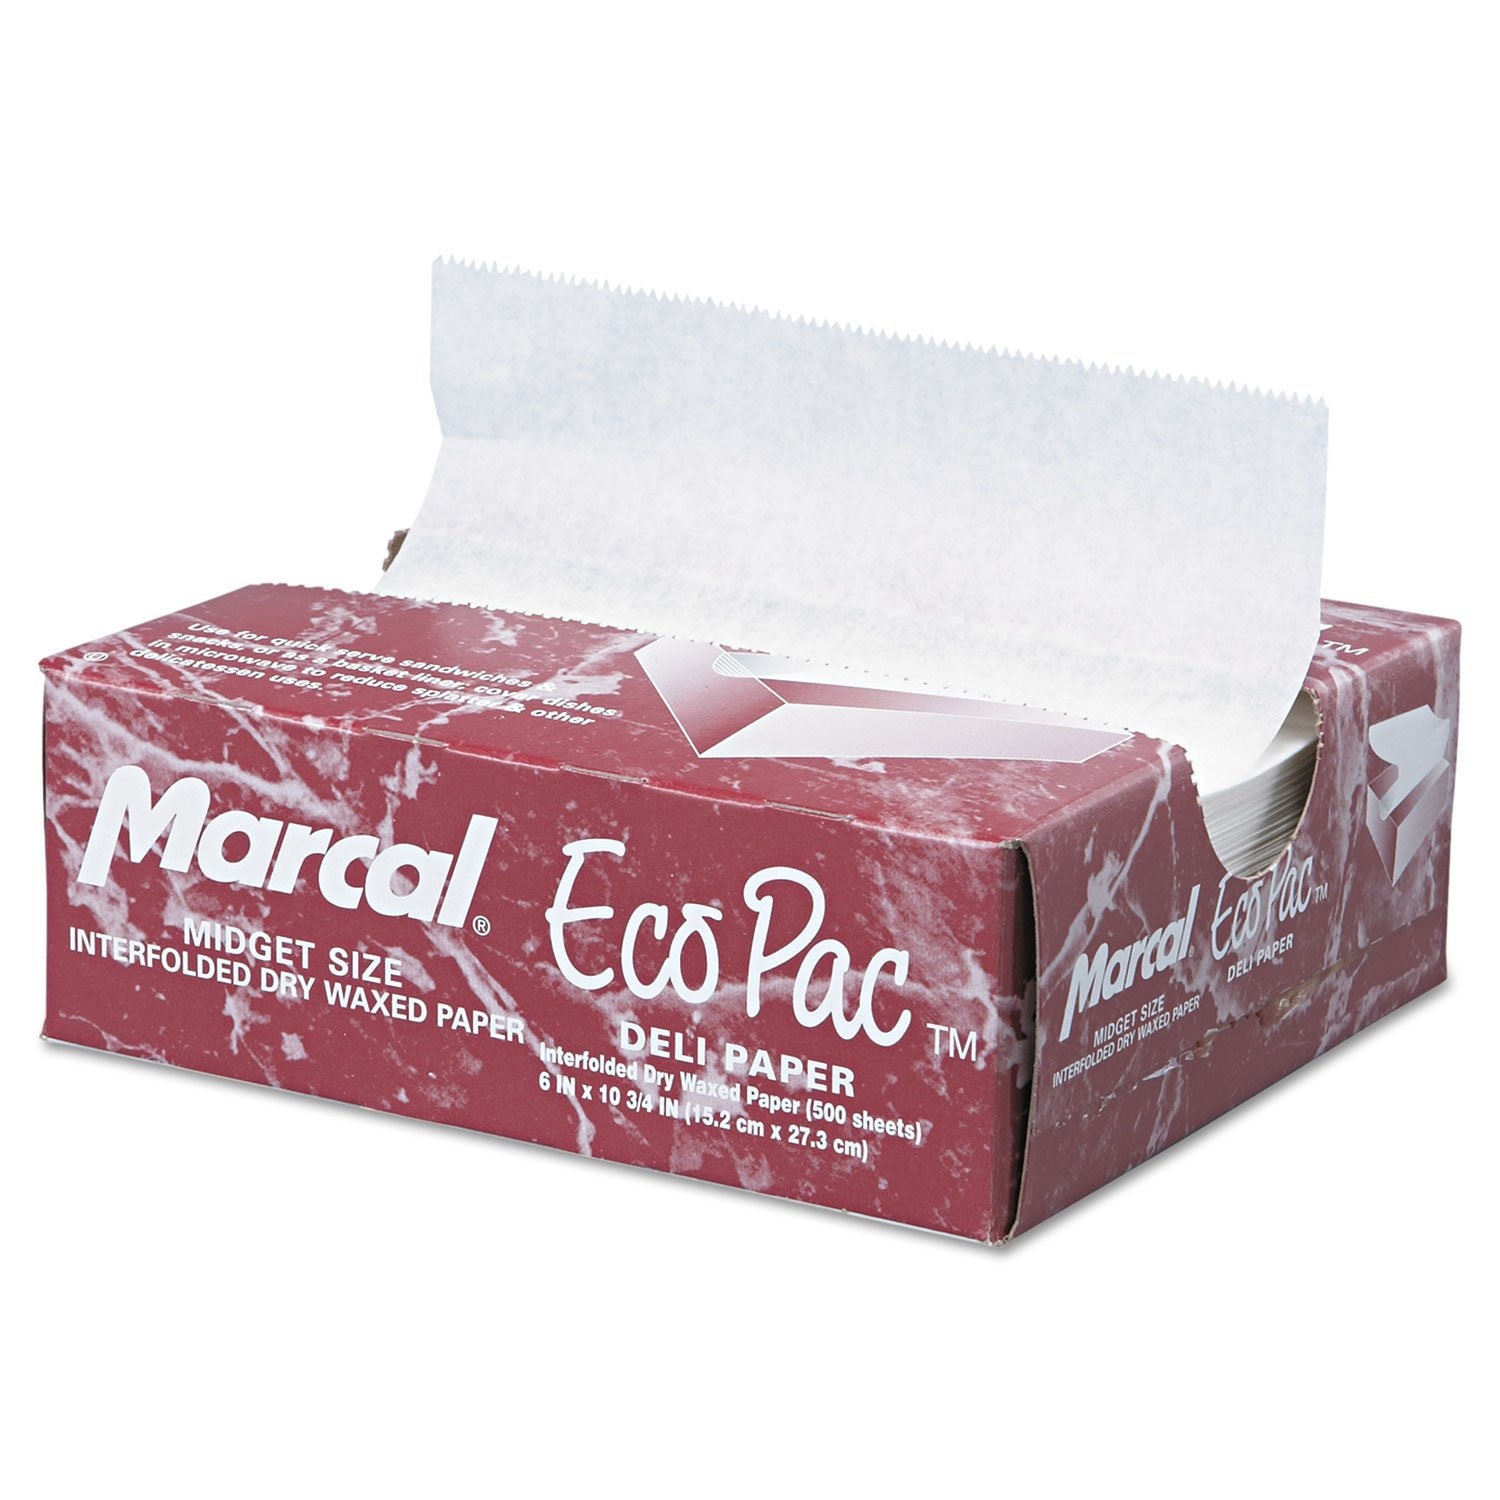 Marcal 5290 Eco-Pac Interfolded Dry Wax Paper 6 x 10 3/4 White 500/Pack 12 Packs/Carton